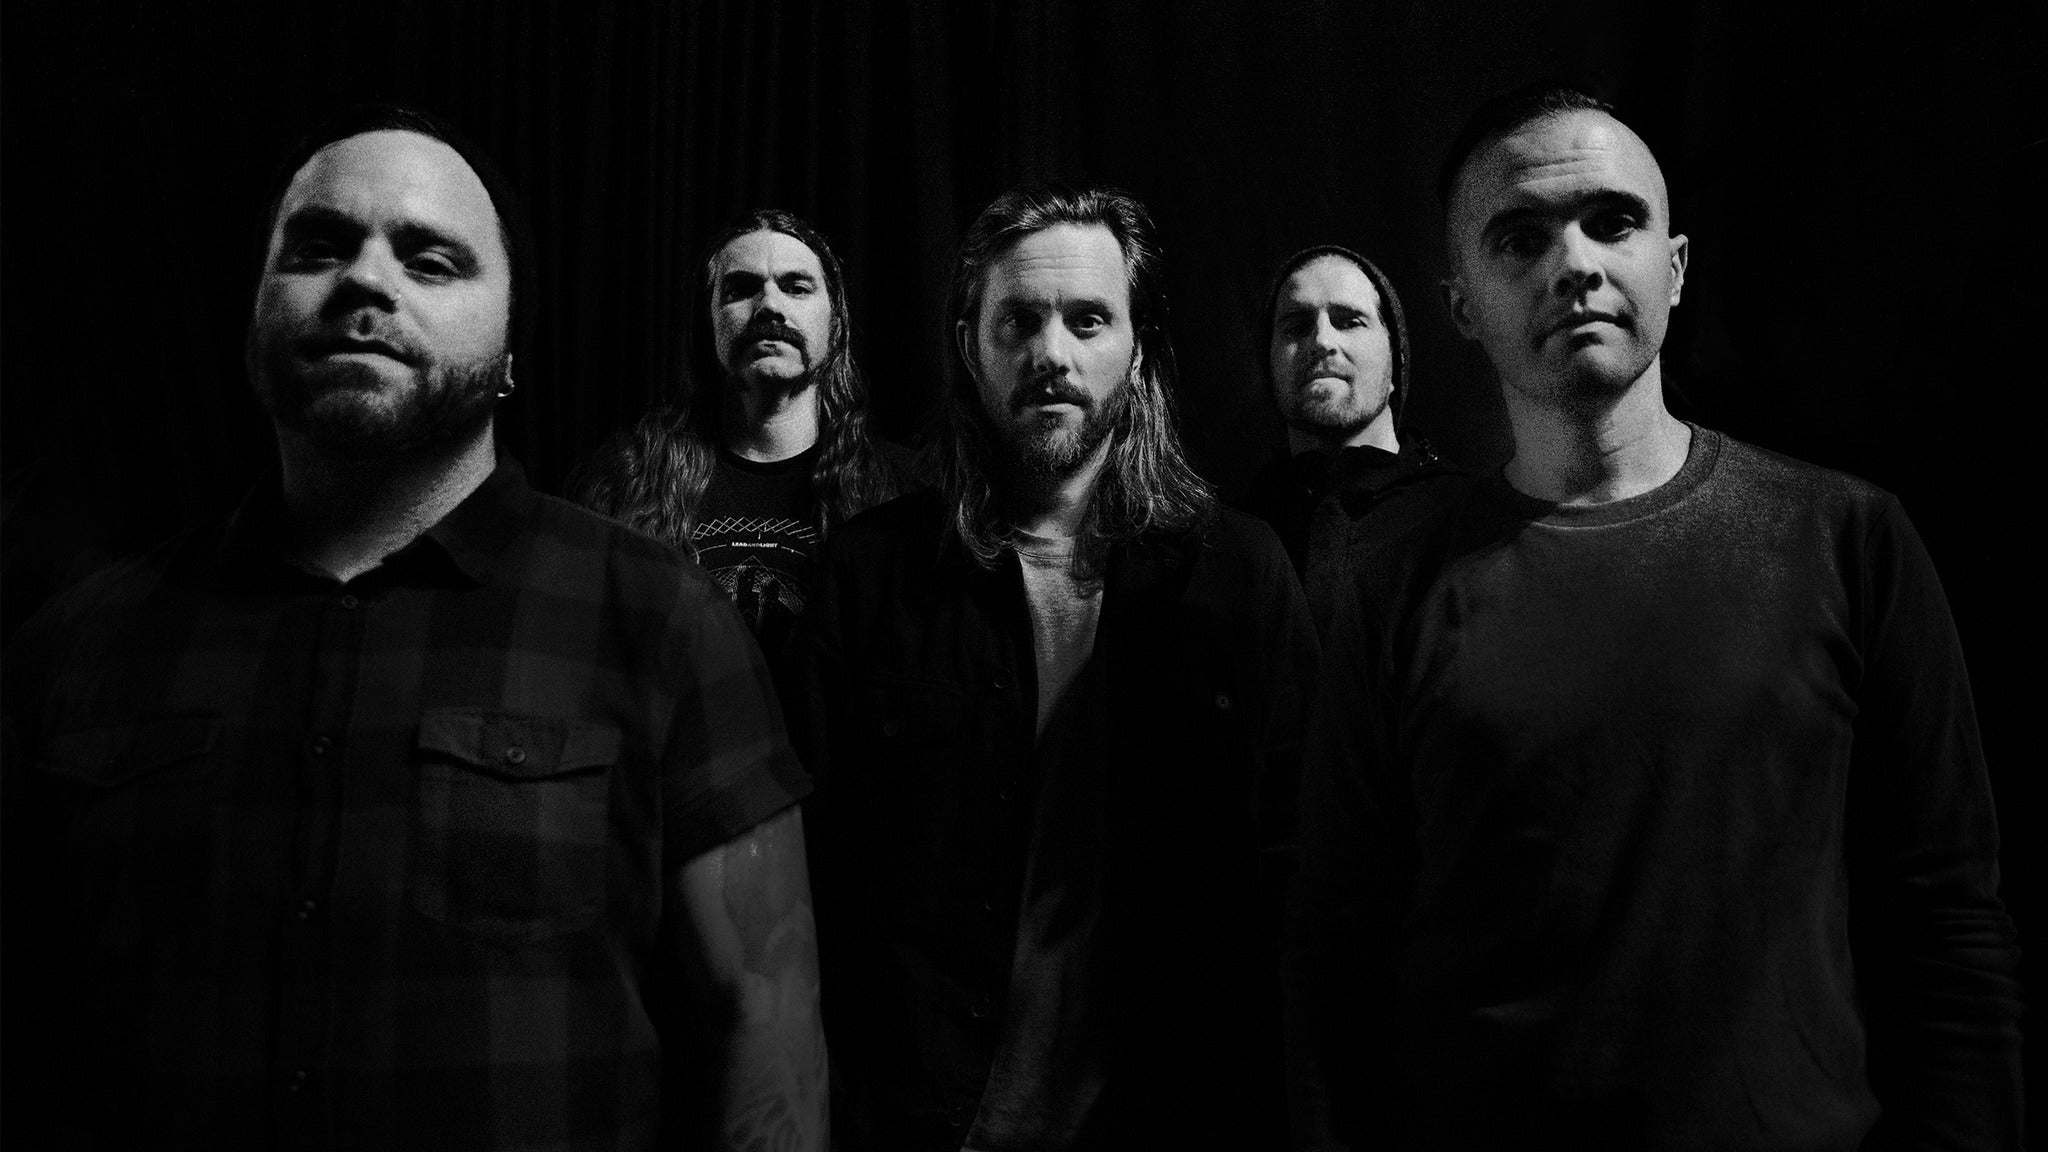 Between The Buried and Me with special guests The Contortionist and Nick Johnston